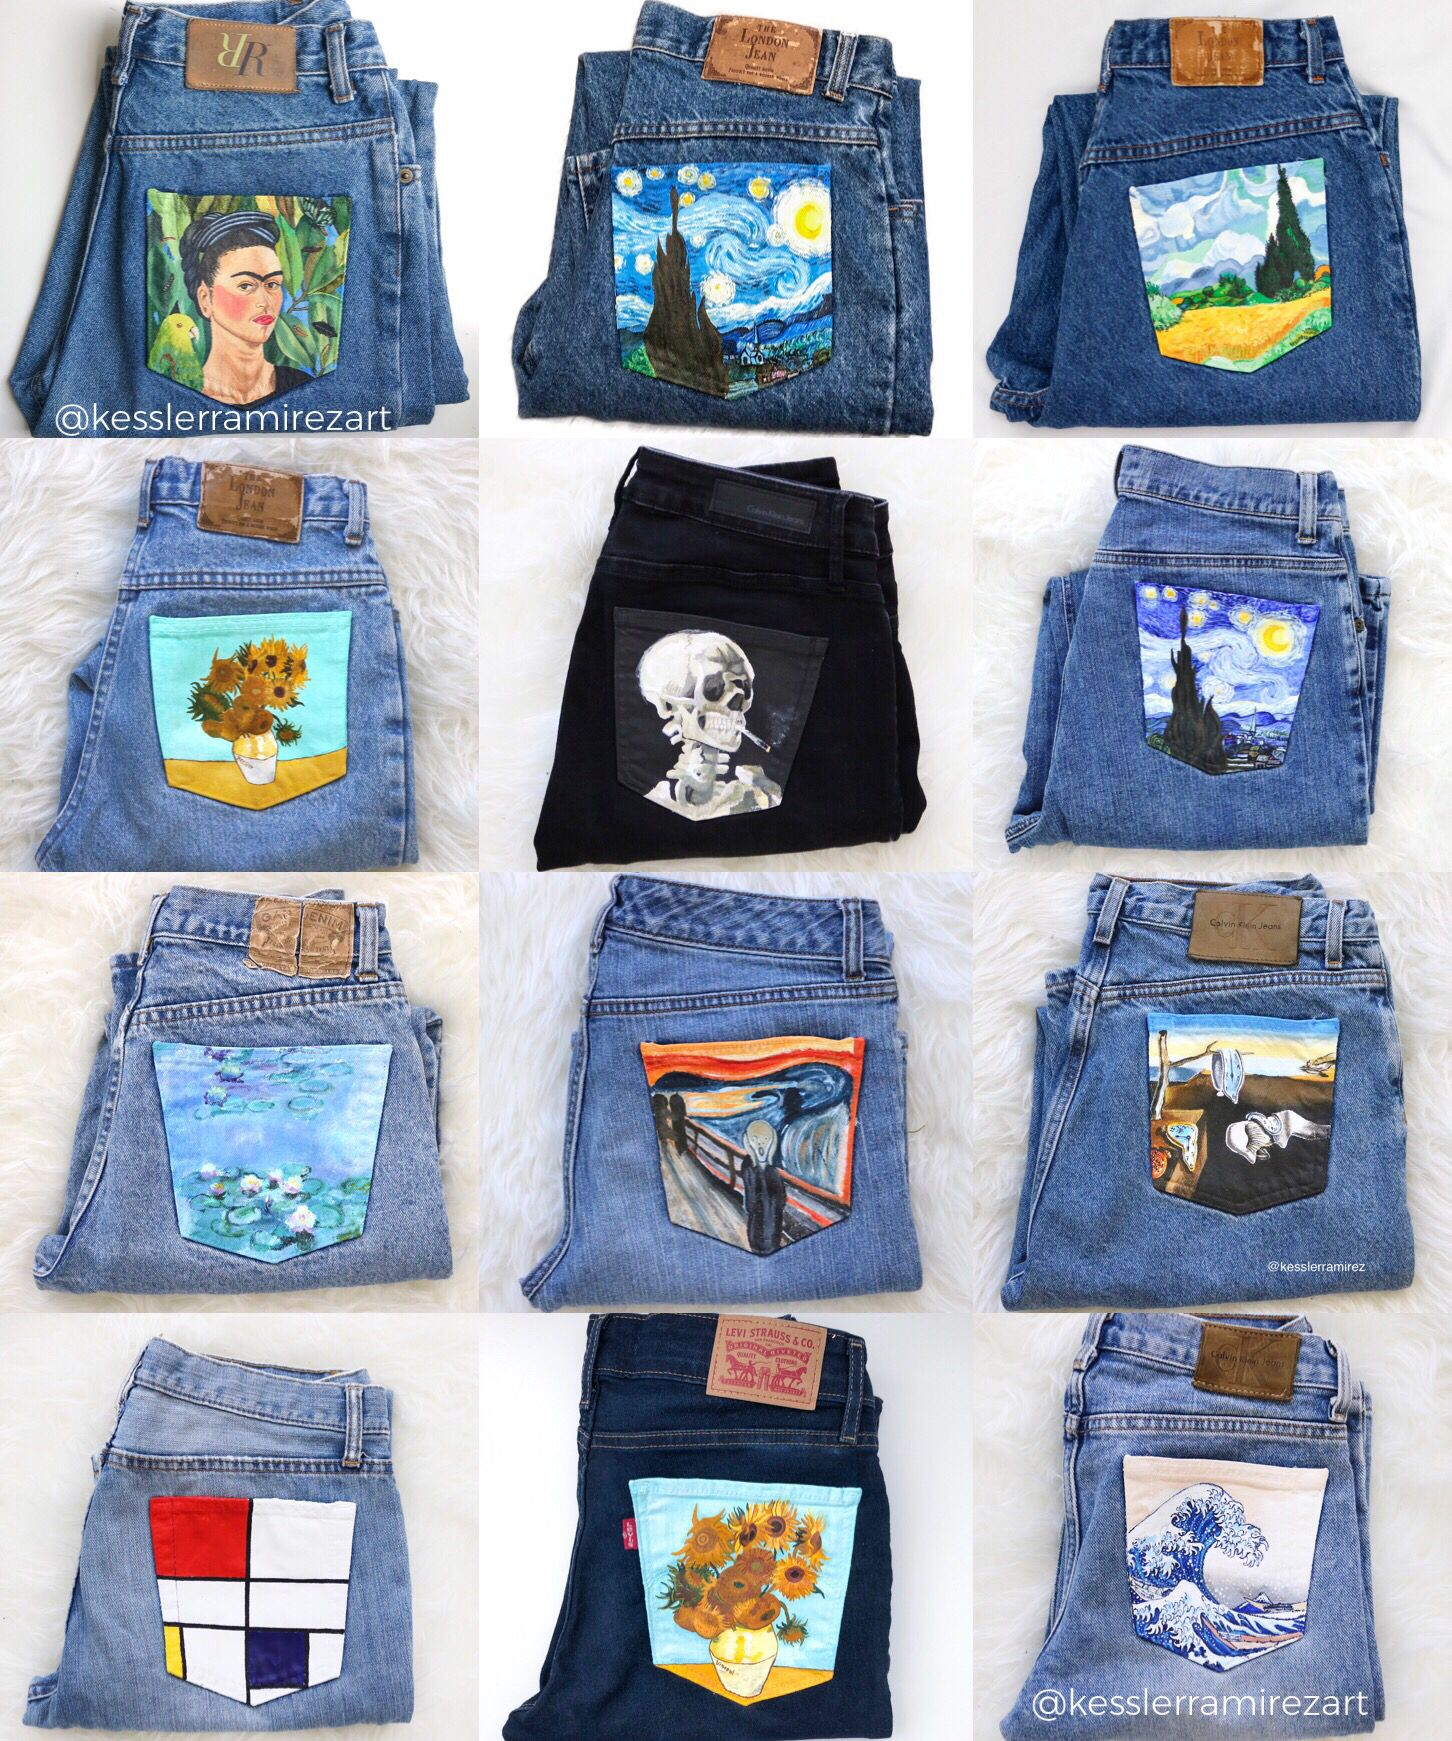 Collection of painted jeans by Kessler Ramirez #wearableart